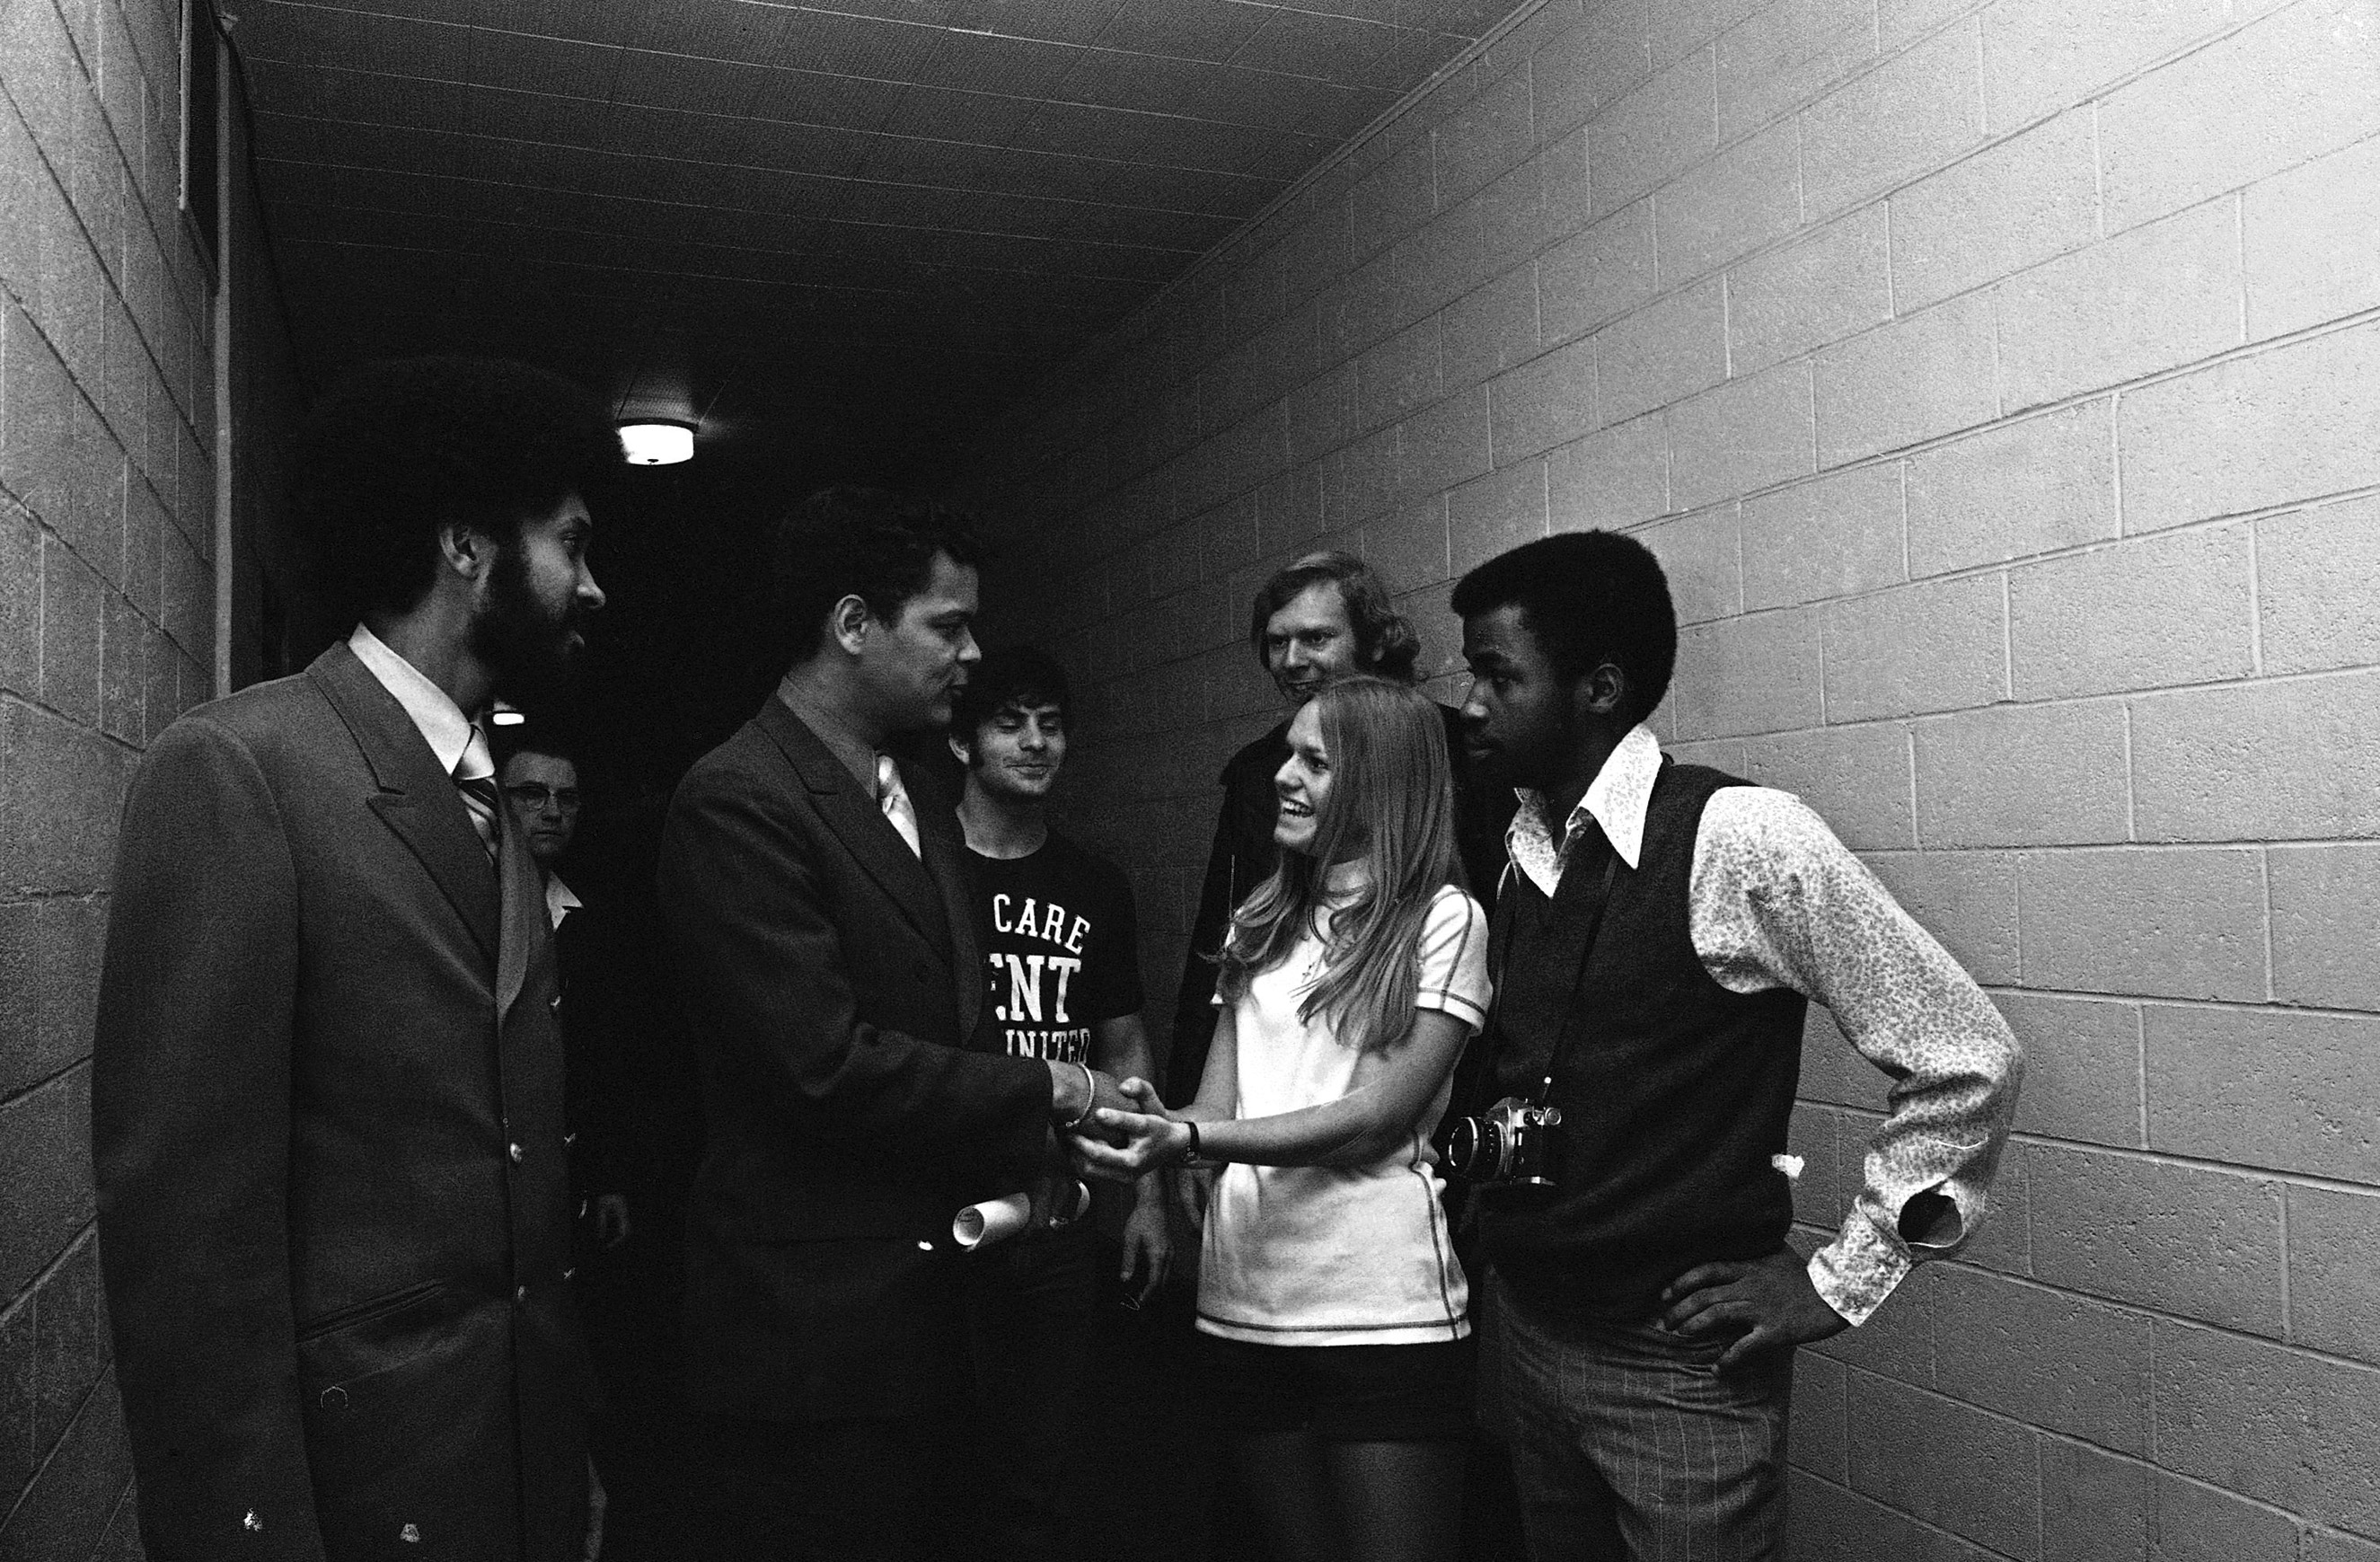 Julian Bond stops to talk with some Kent State University students before making a speech on May 2, 1971 at the campus in Kent, Ohio. Bond's speech was part of a four-day memorial period for the four students killed during campus demonstrations.